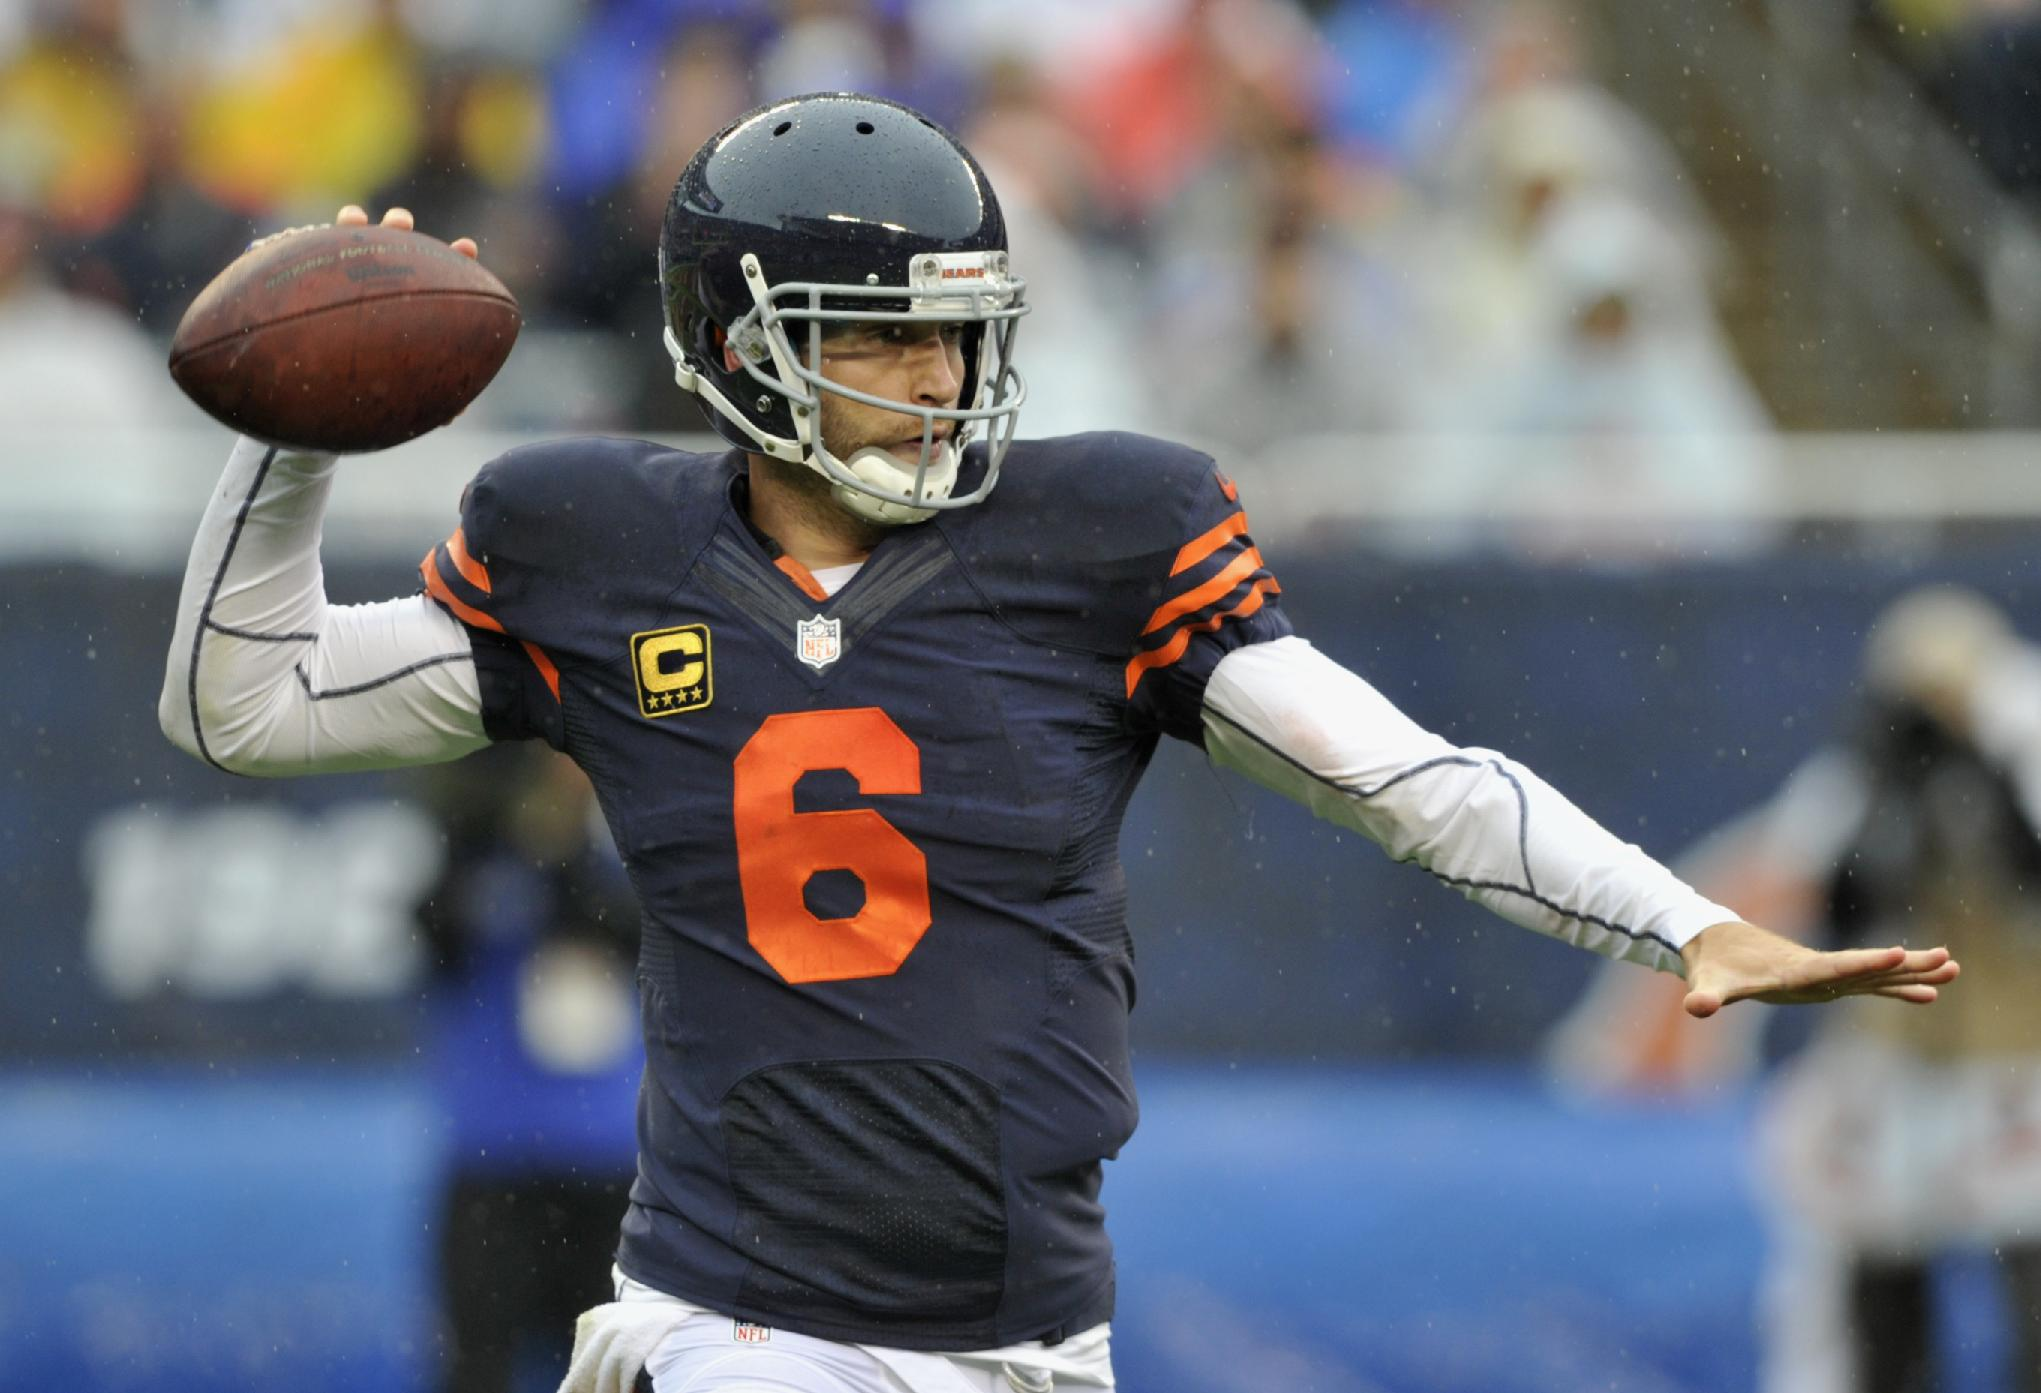 Chicago Bears quarterback Jay Cutler (6) fires a pass against the Minnesota Vikings during the first half of an NFL football game on Sunday, Sept. 15, 2013, in Chicago